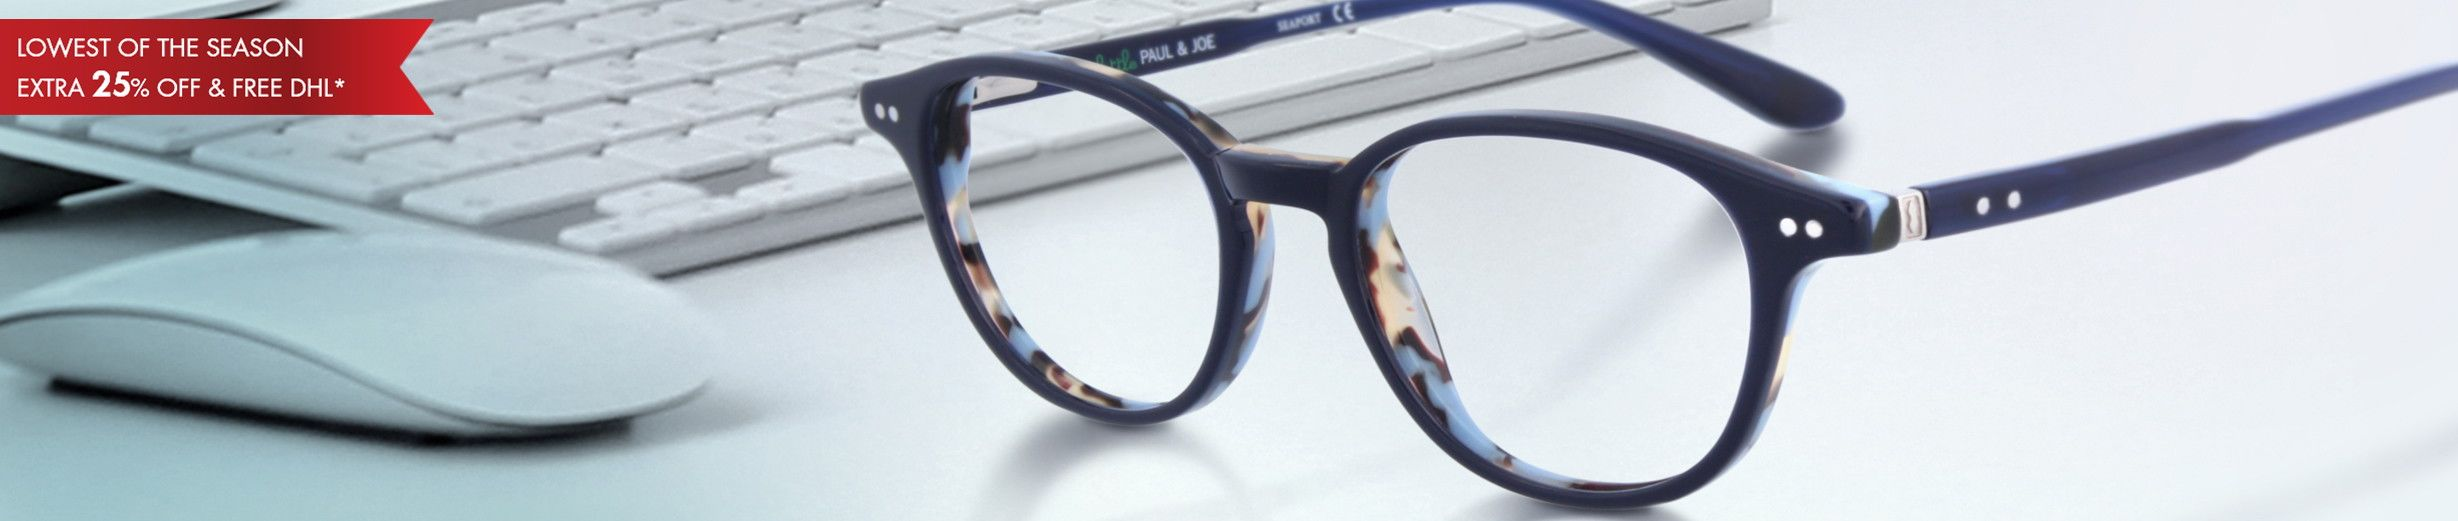 Pre-Teen (age 8-12) glasses on sale! up to 70% off retail price.